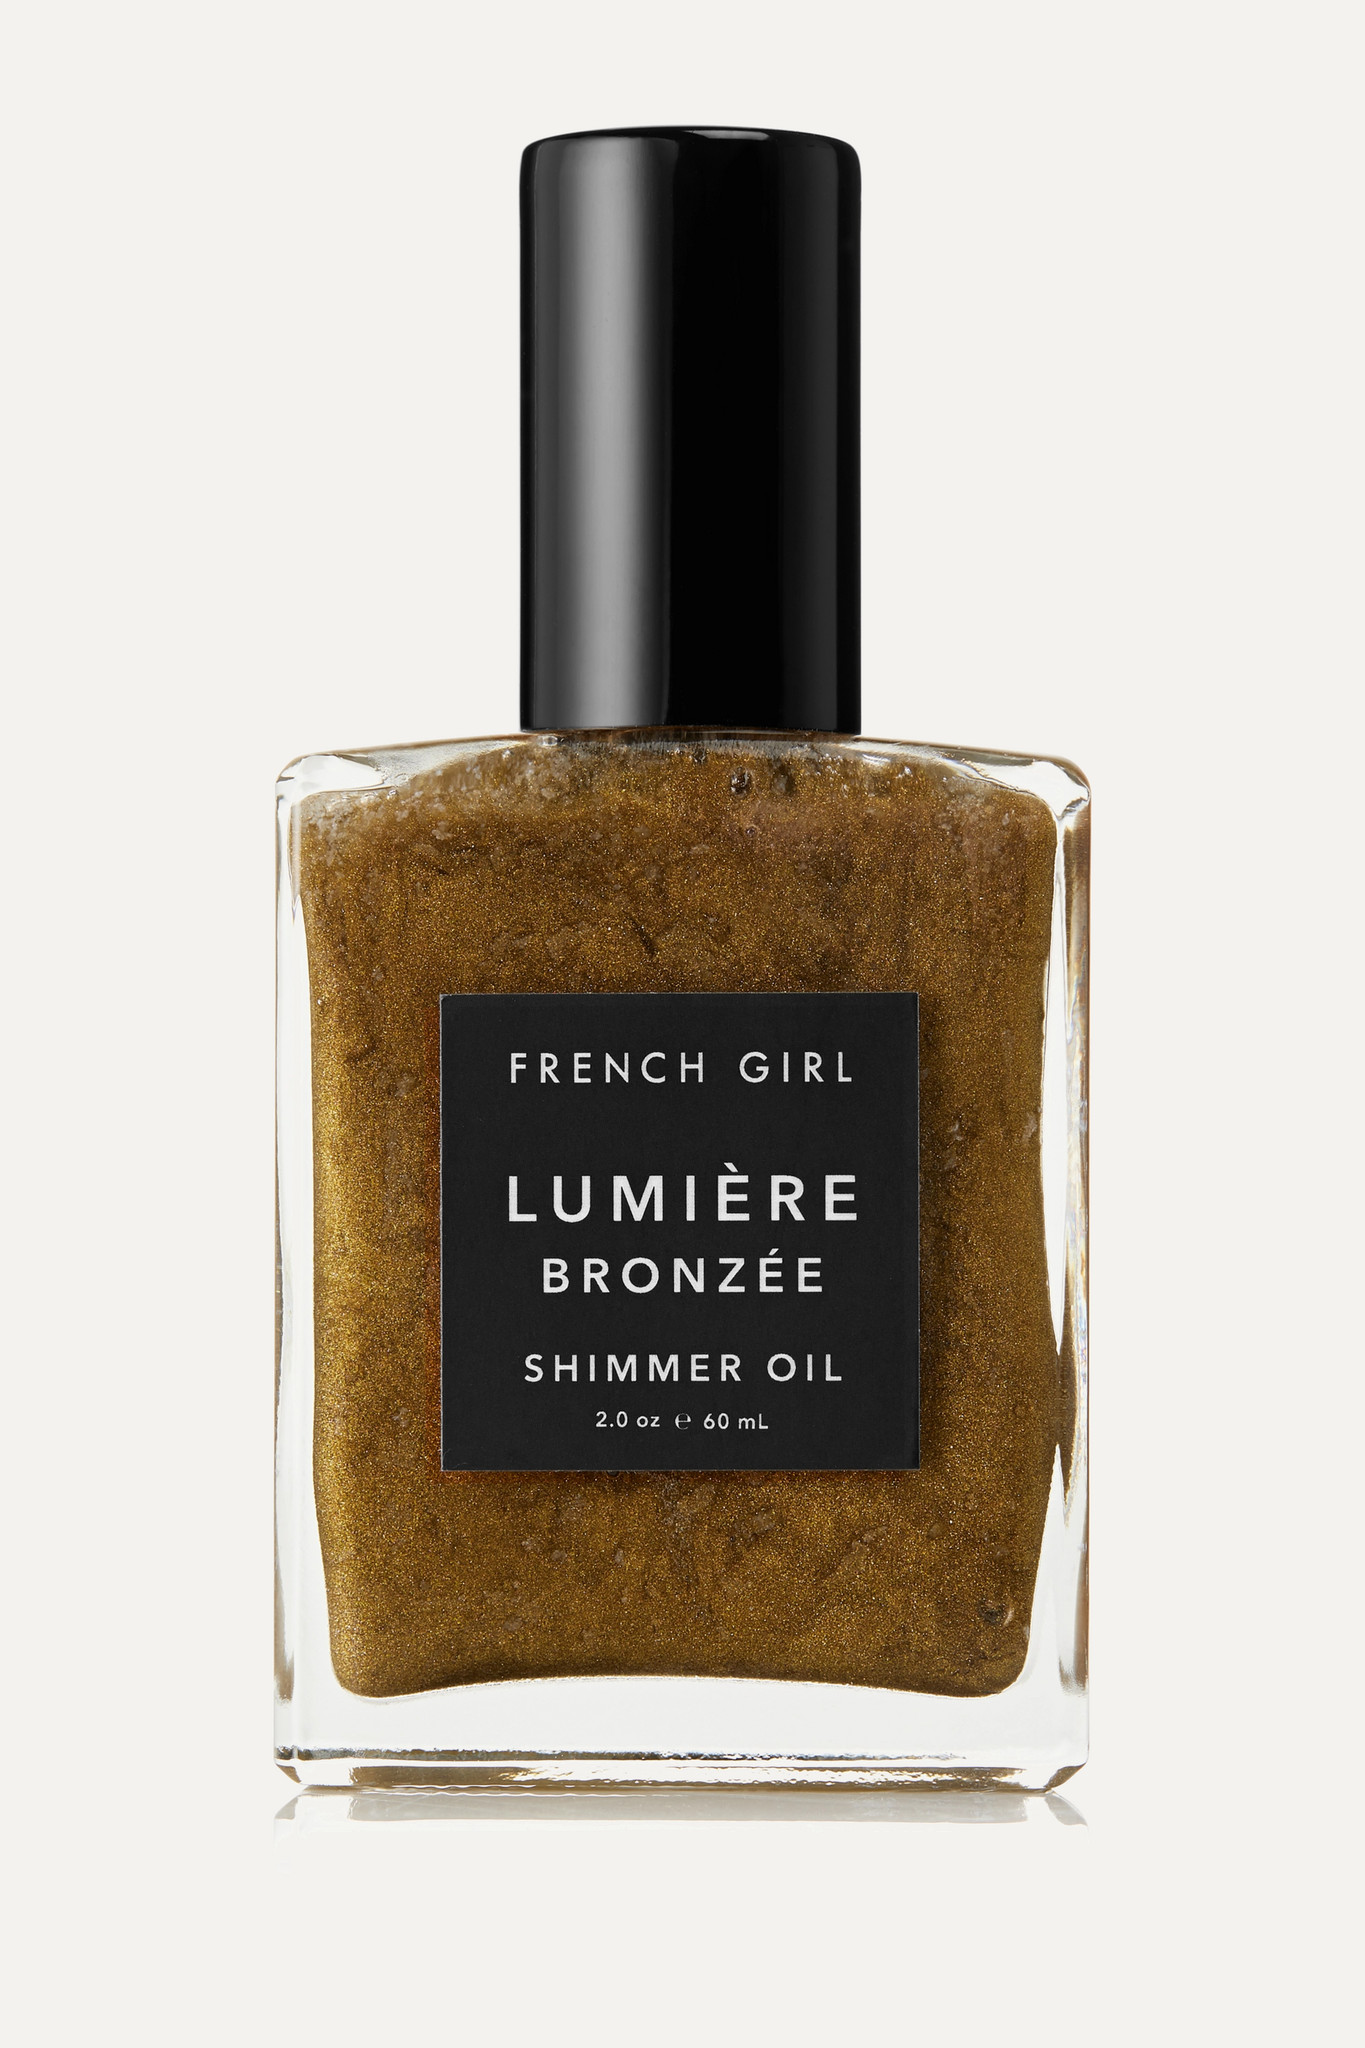 FRENCH GIRL ORGANICS - Lumière Bronzée Shimmer Oil, 60ml - one size